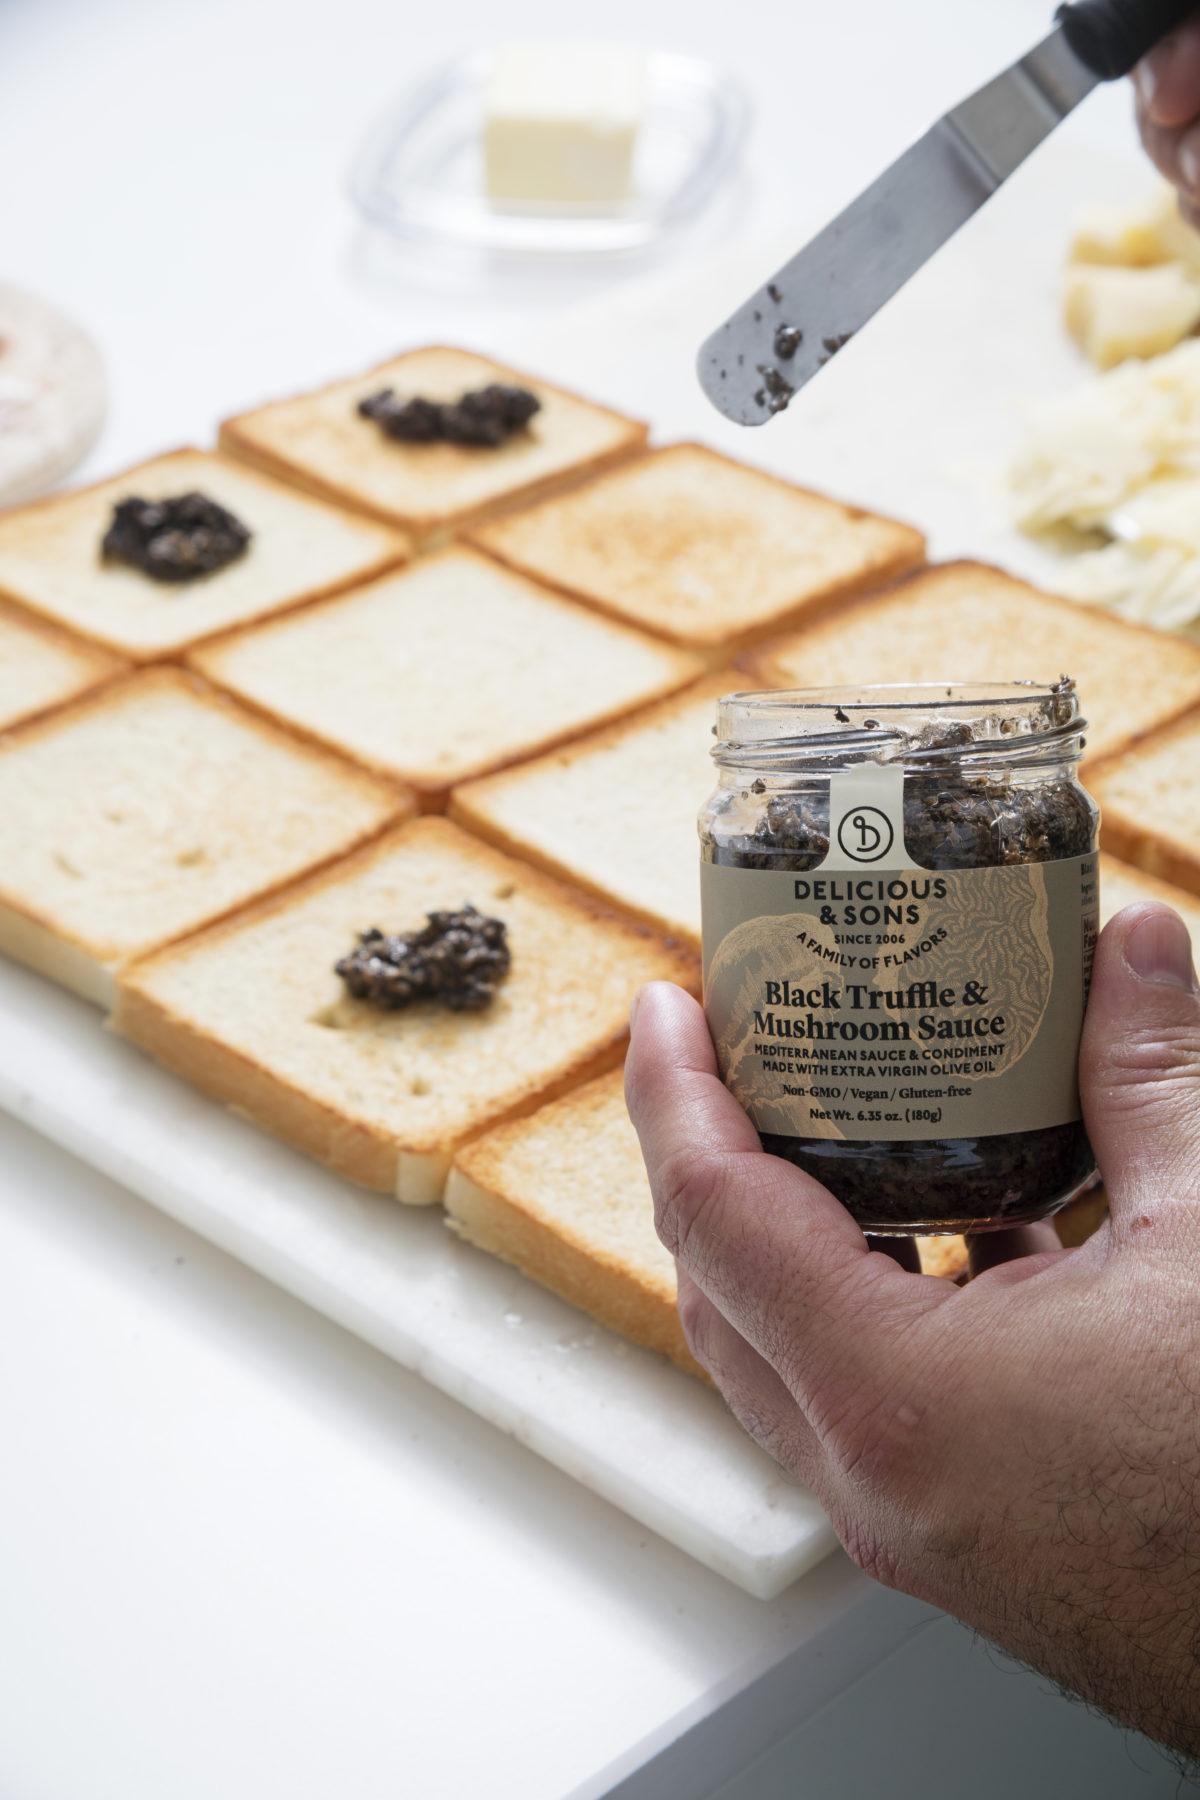 Grilled Iberic Ham & Cheese Sandwich with Parmesan and Black Truffle & Mushroom Sauce by Dani Guerrero — Delicious & Sons